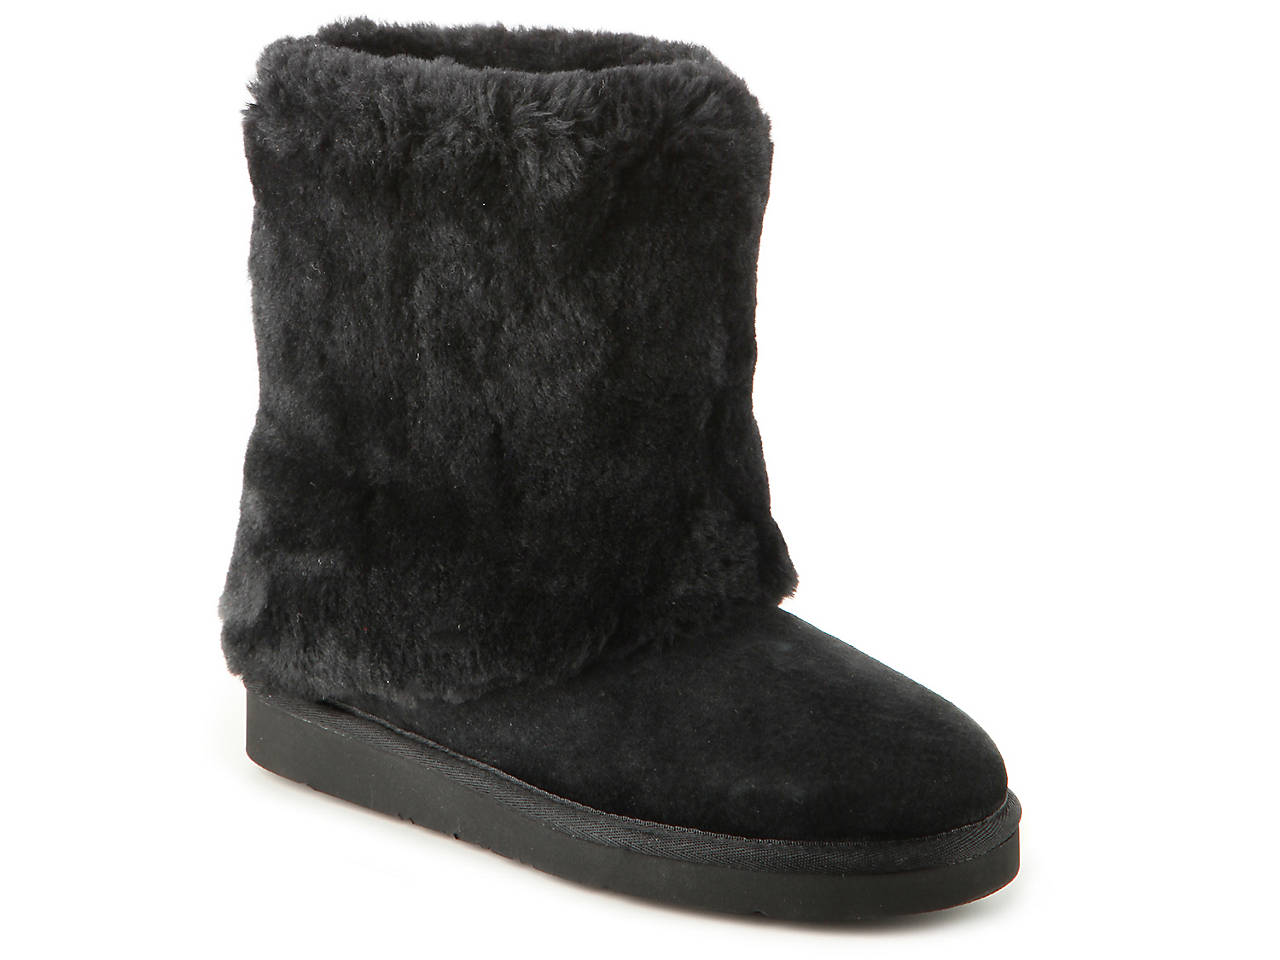 black and grey ugg boots